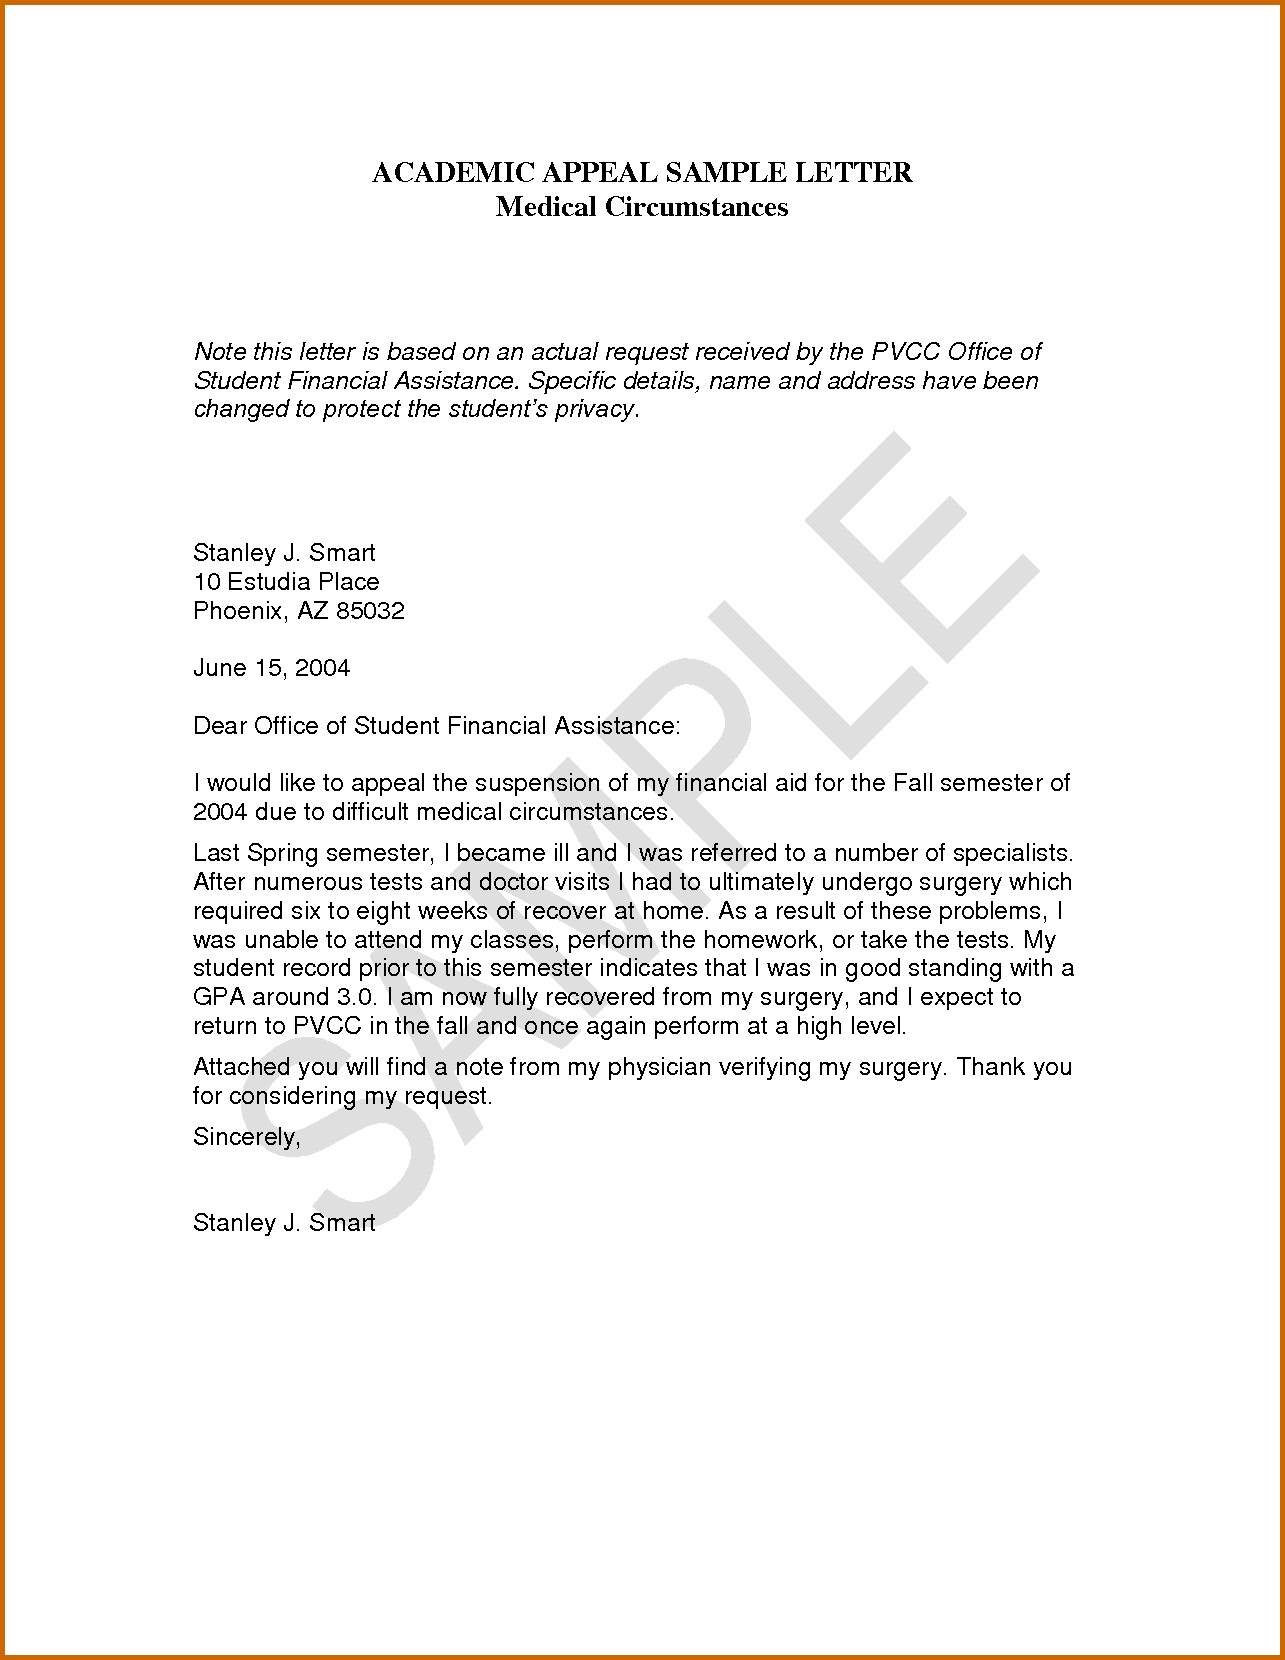 10 day appeal letter template collection letter cover templates 10 day appeal letter template examples appeal letter for financial support valid save best new spiritdancerdesigns Gallery